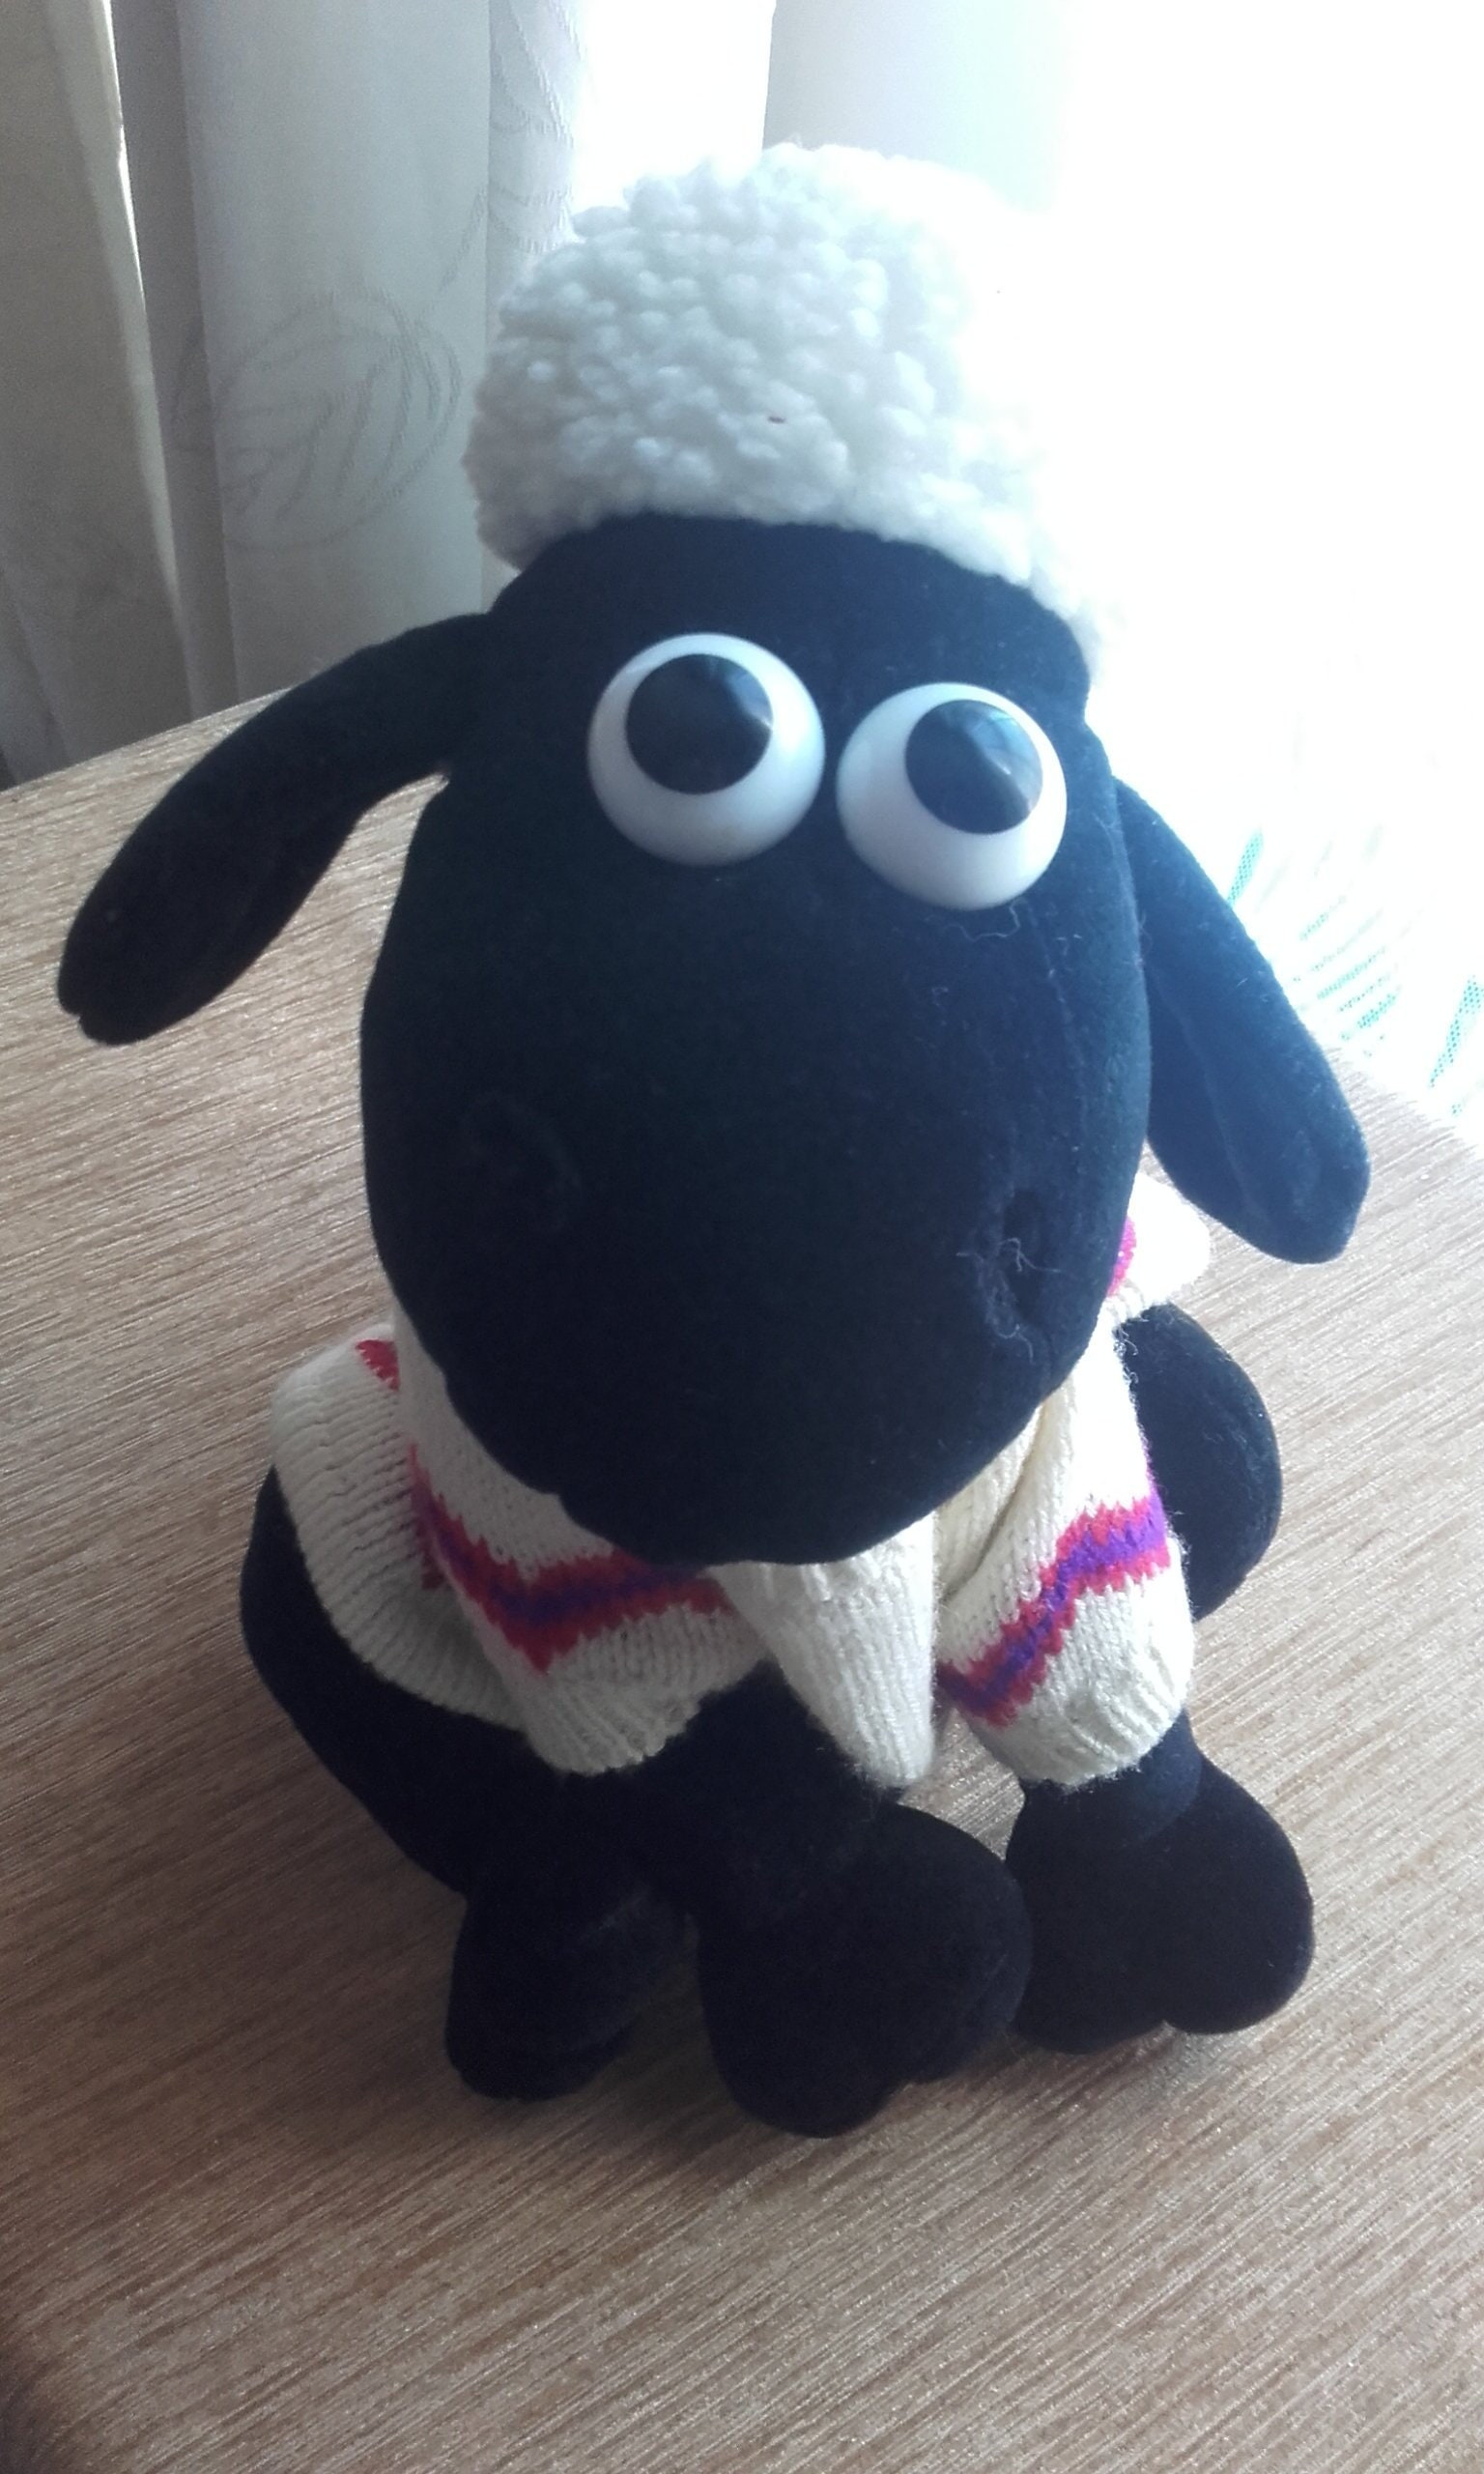 Wallace and Gromit Vintage Shaun The Sheep Stuffed Cuddly Soft Toy. 1989. Made by Born to Play TM. Plush Clean Condition.